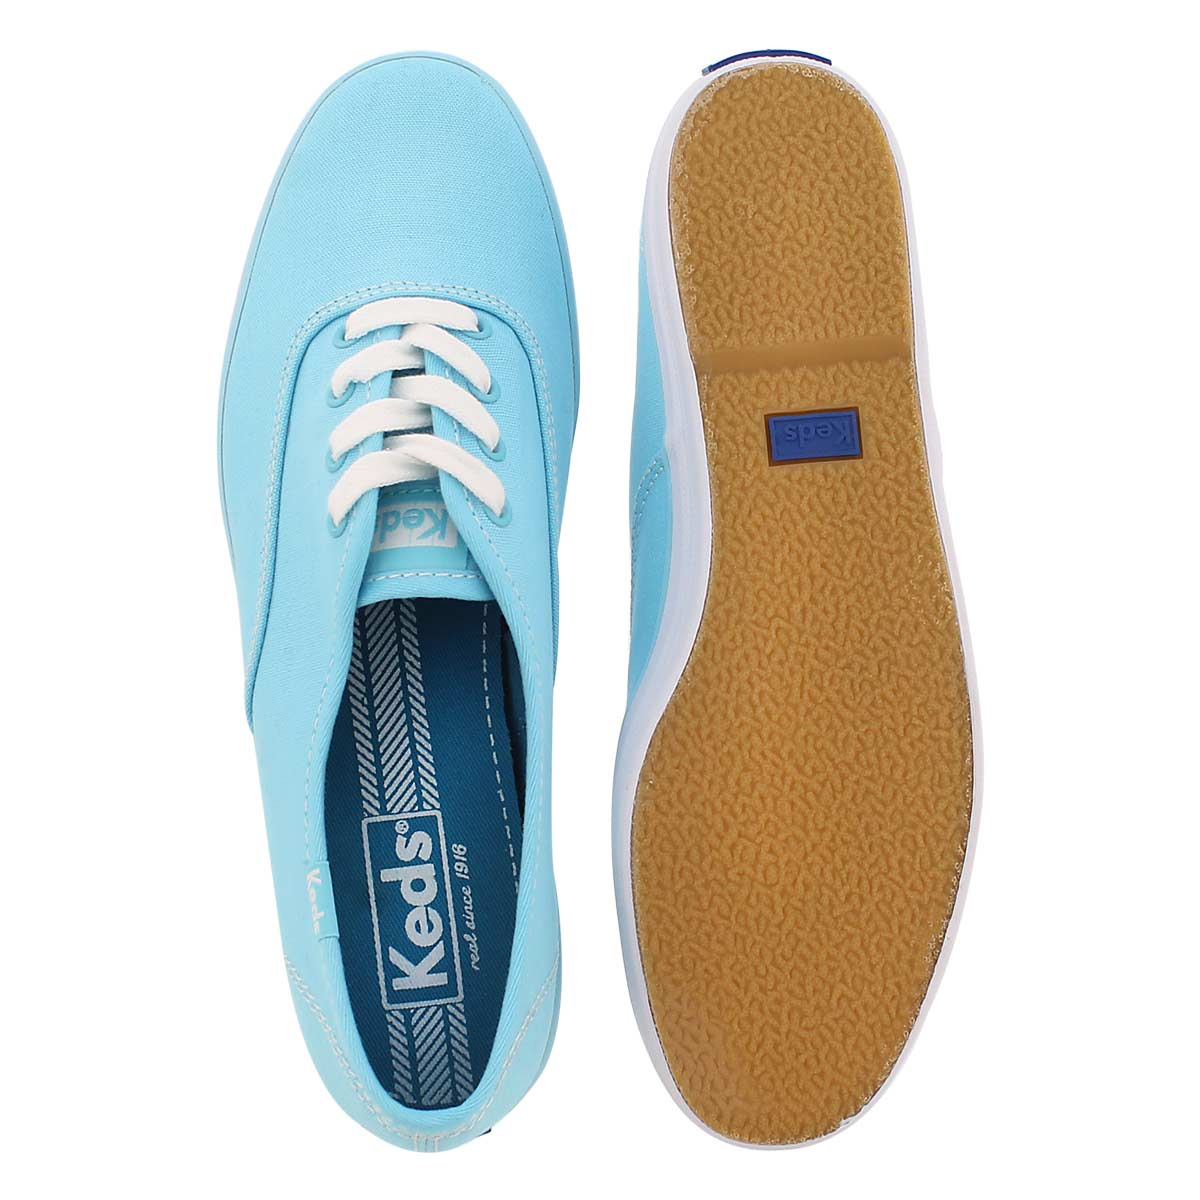 Lds Champion sky blue canvas CVO sneaker